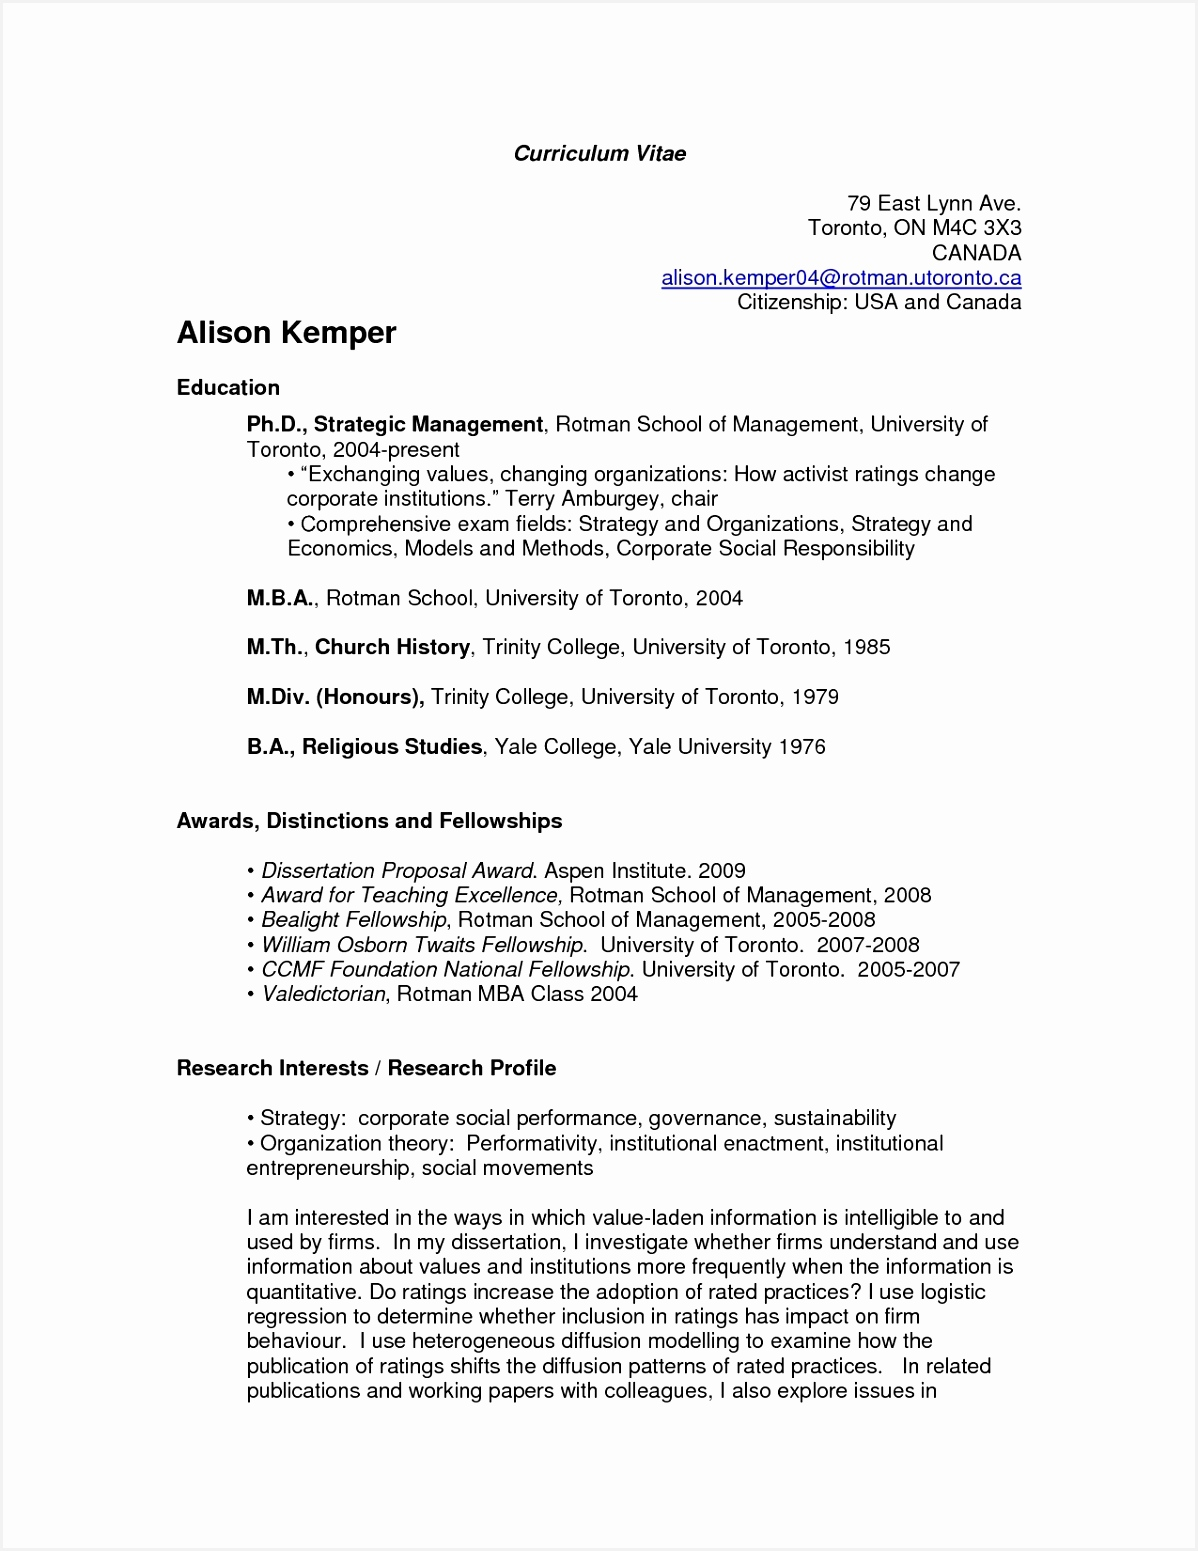 Academic Resume Sample Professional Prehensive Resume Template New Unique Pr Elegant Dictionary 0d 155111982vXfc